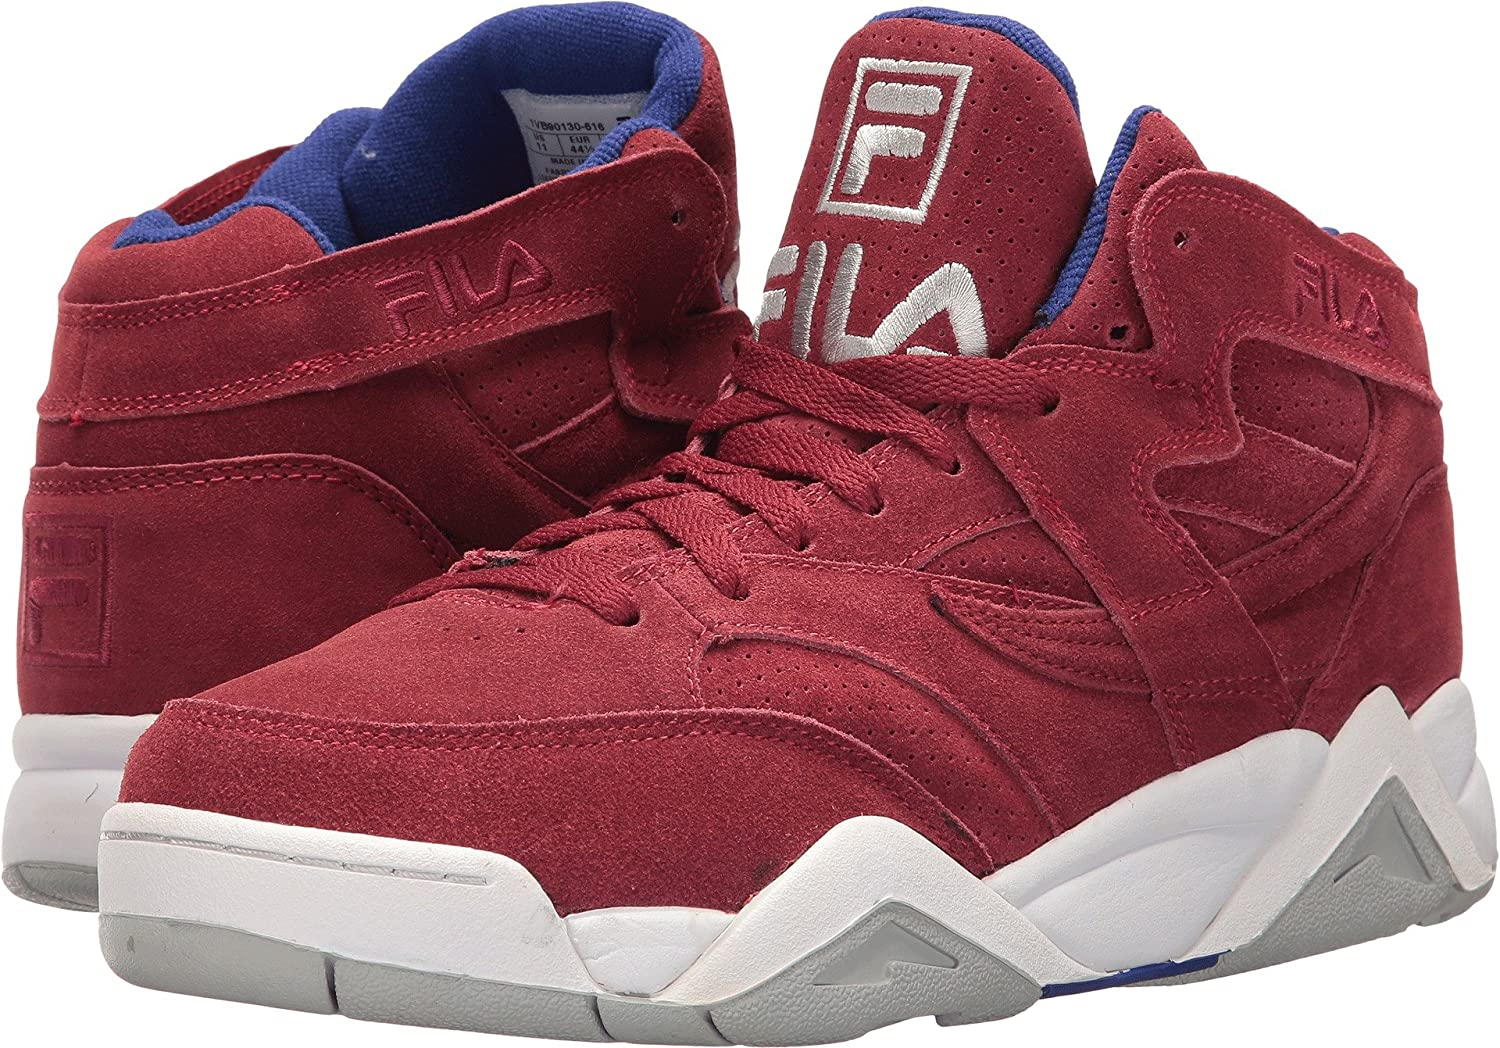 Fila Men's M Squad Red blueee White Basketball shoes